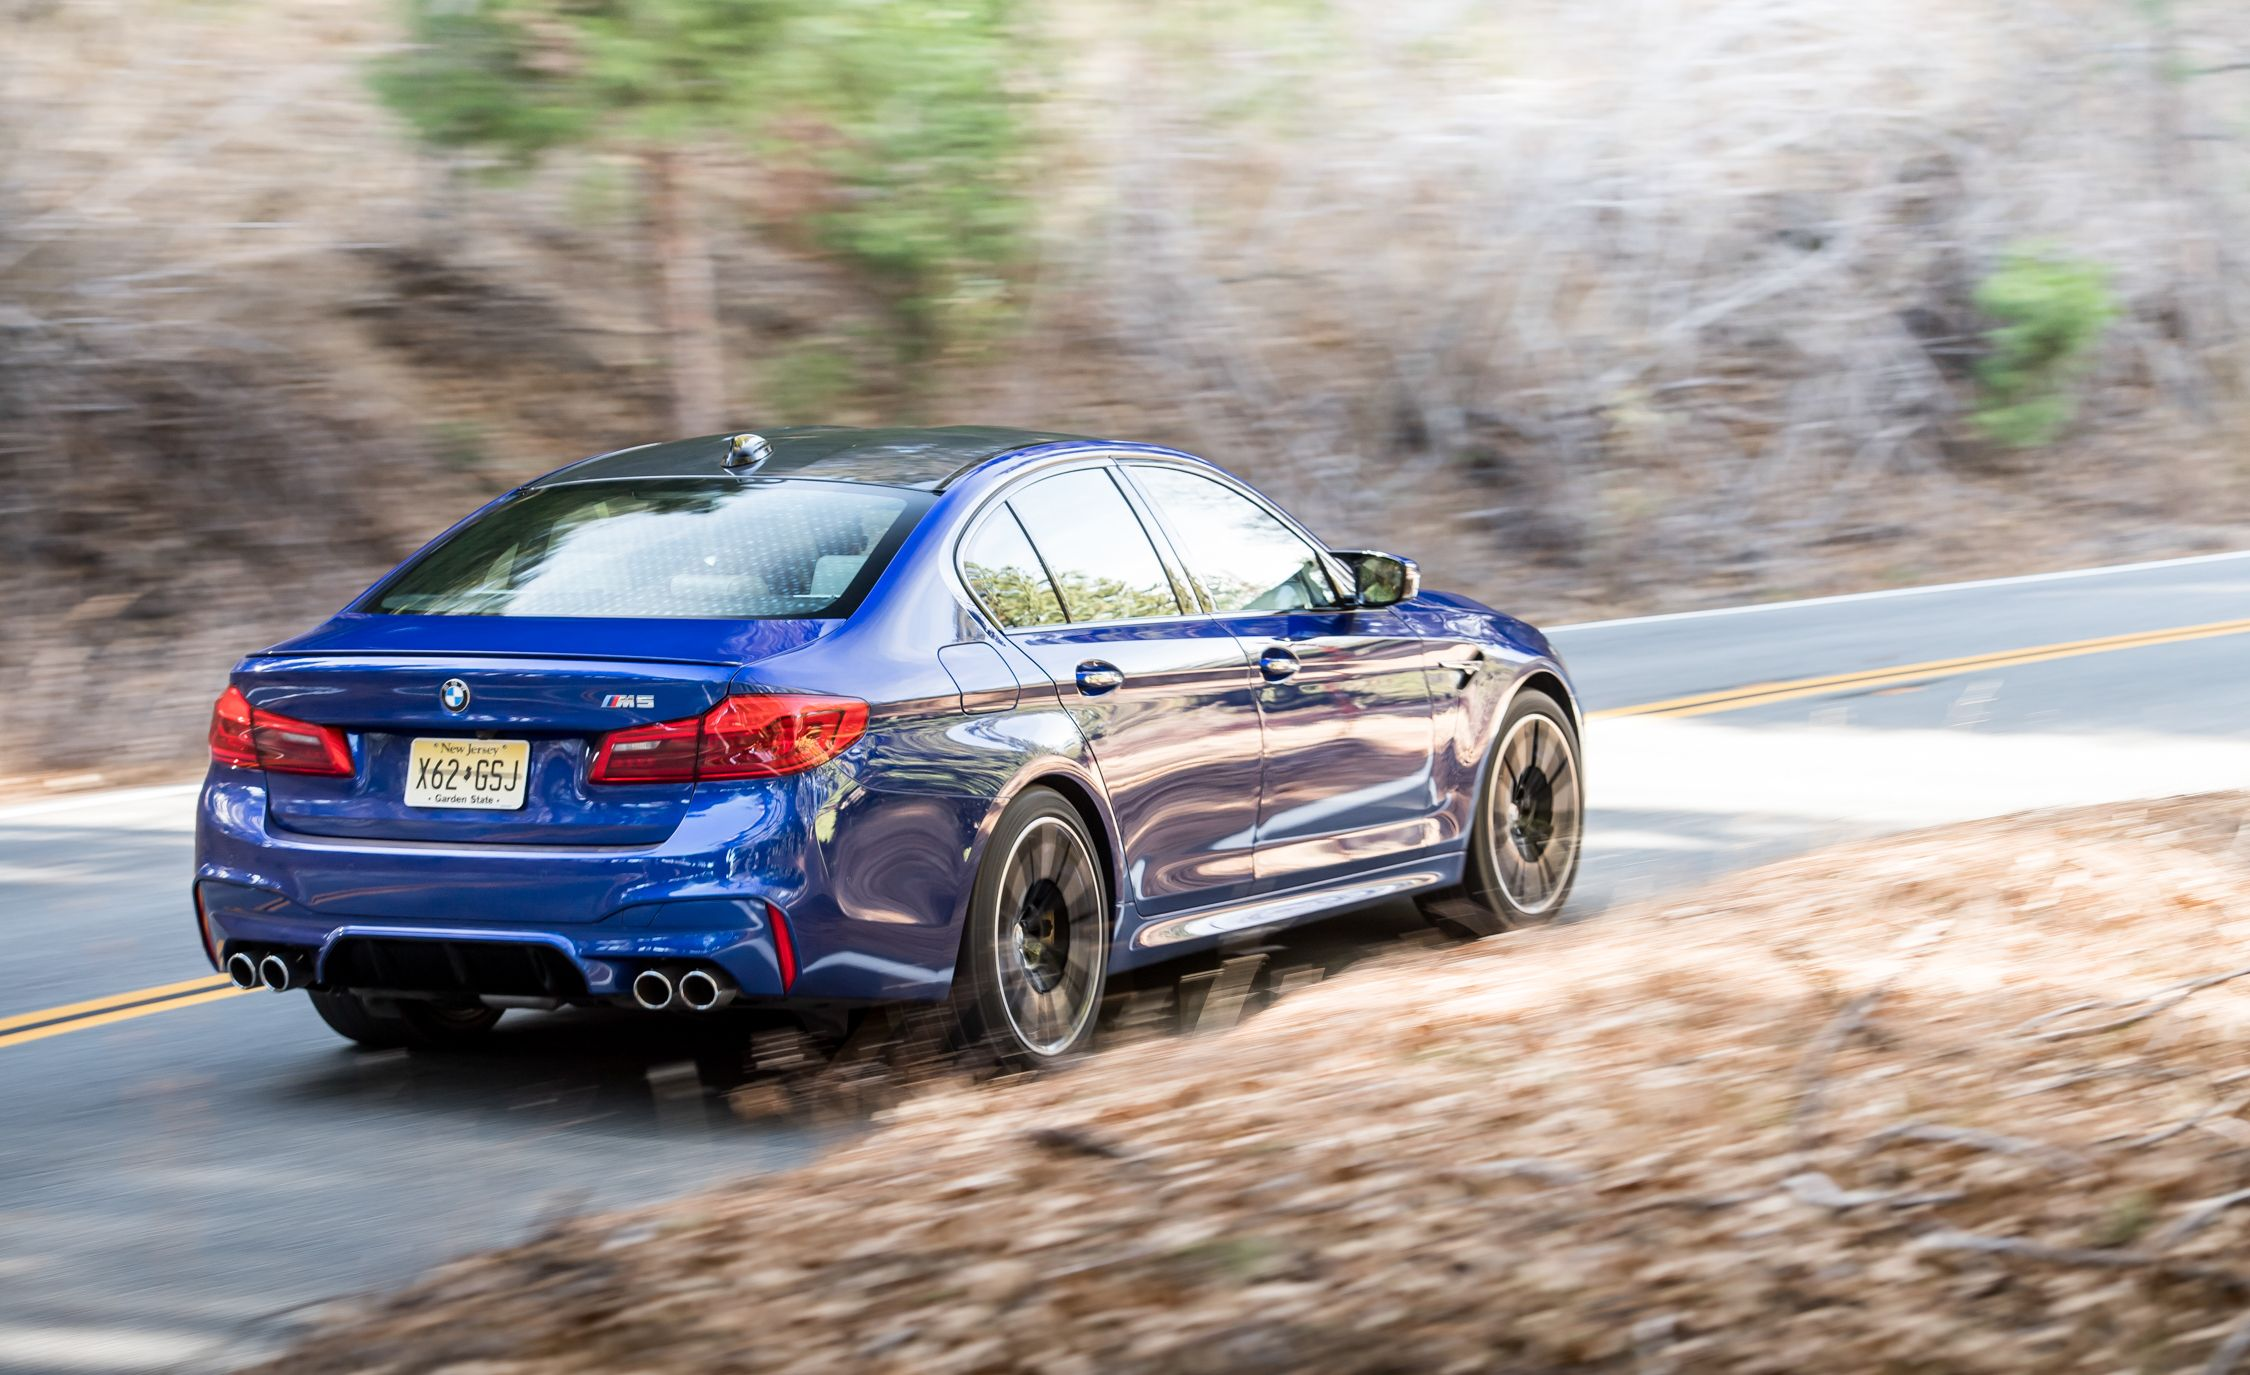 2019 Bmw M5 Reviews Bmw M5 Price Photos And Specs Car And Driver